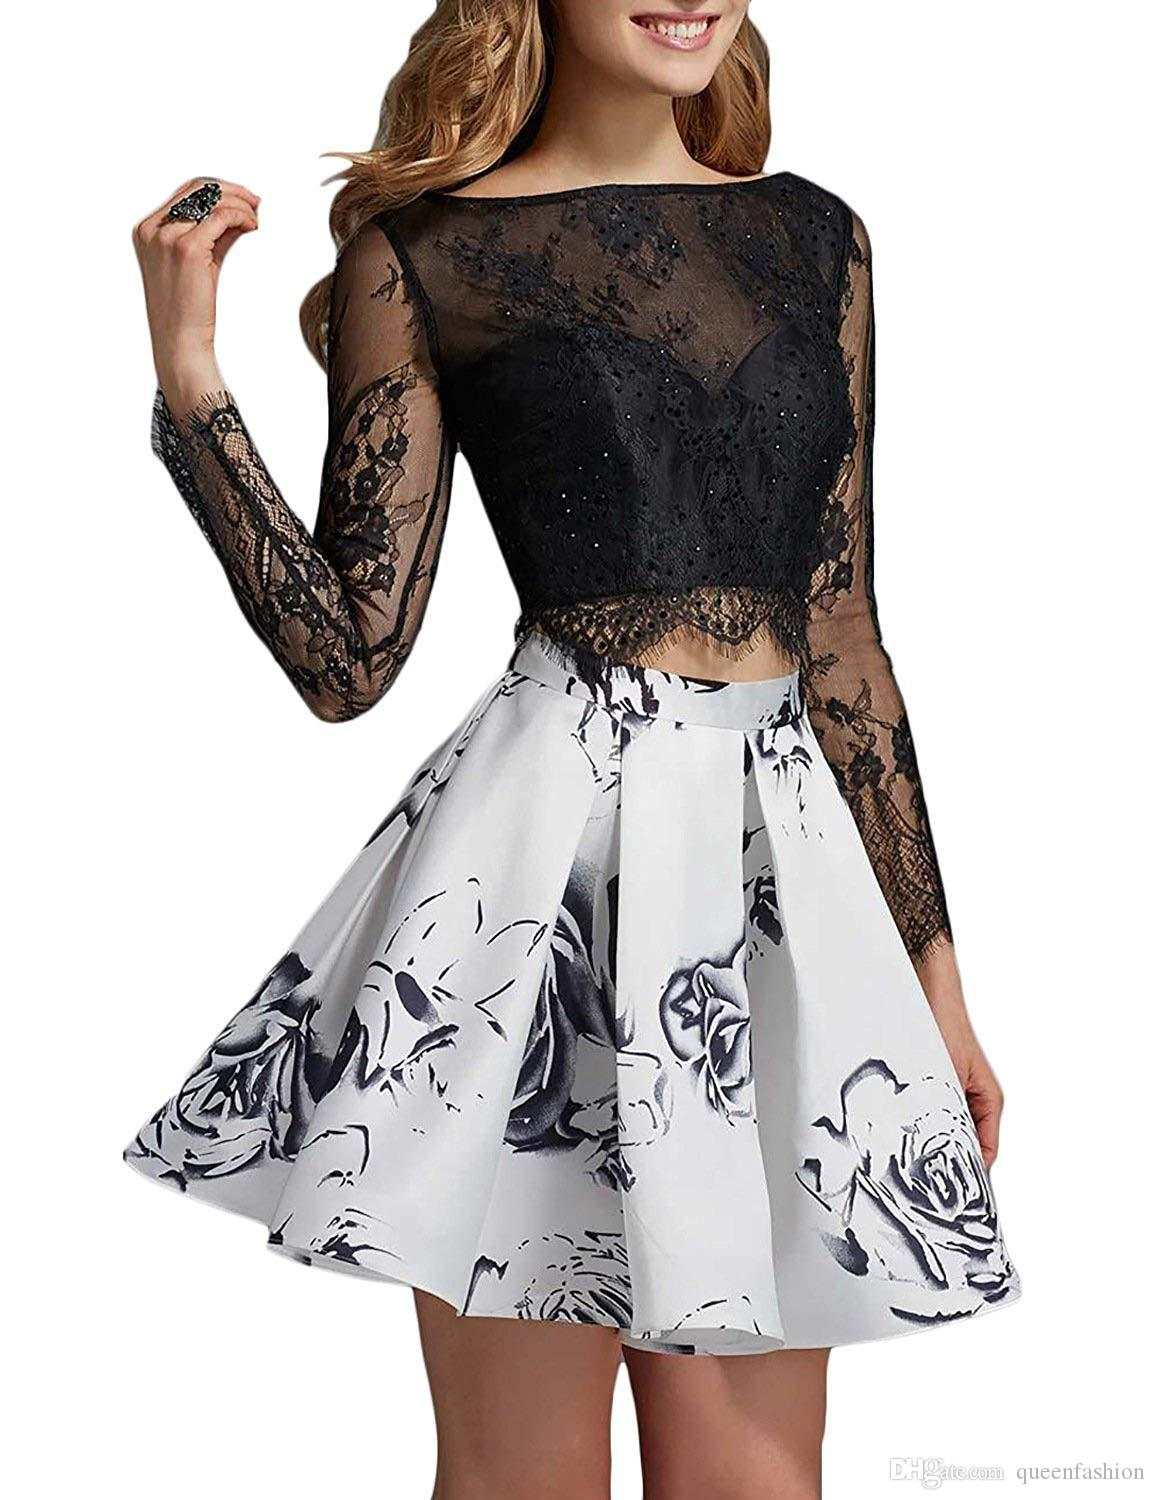 Short Floral Prom Graduation Gowns 3D Flower Two Pieces Homecoming Dresses Crop Top Cocktail Party Dresses